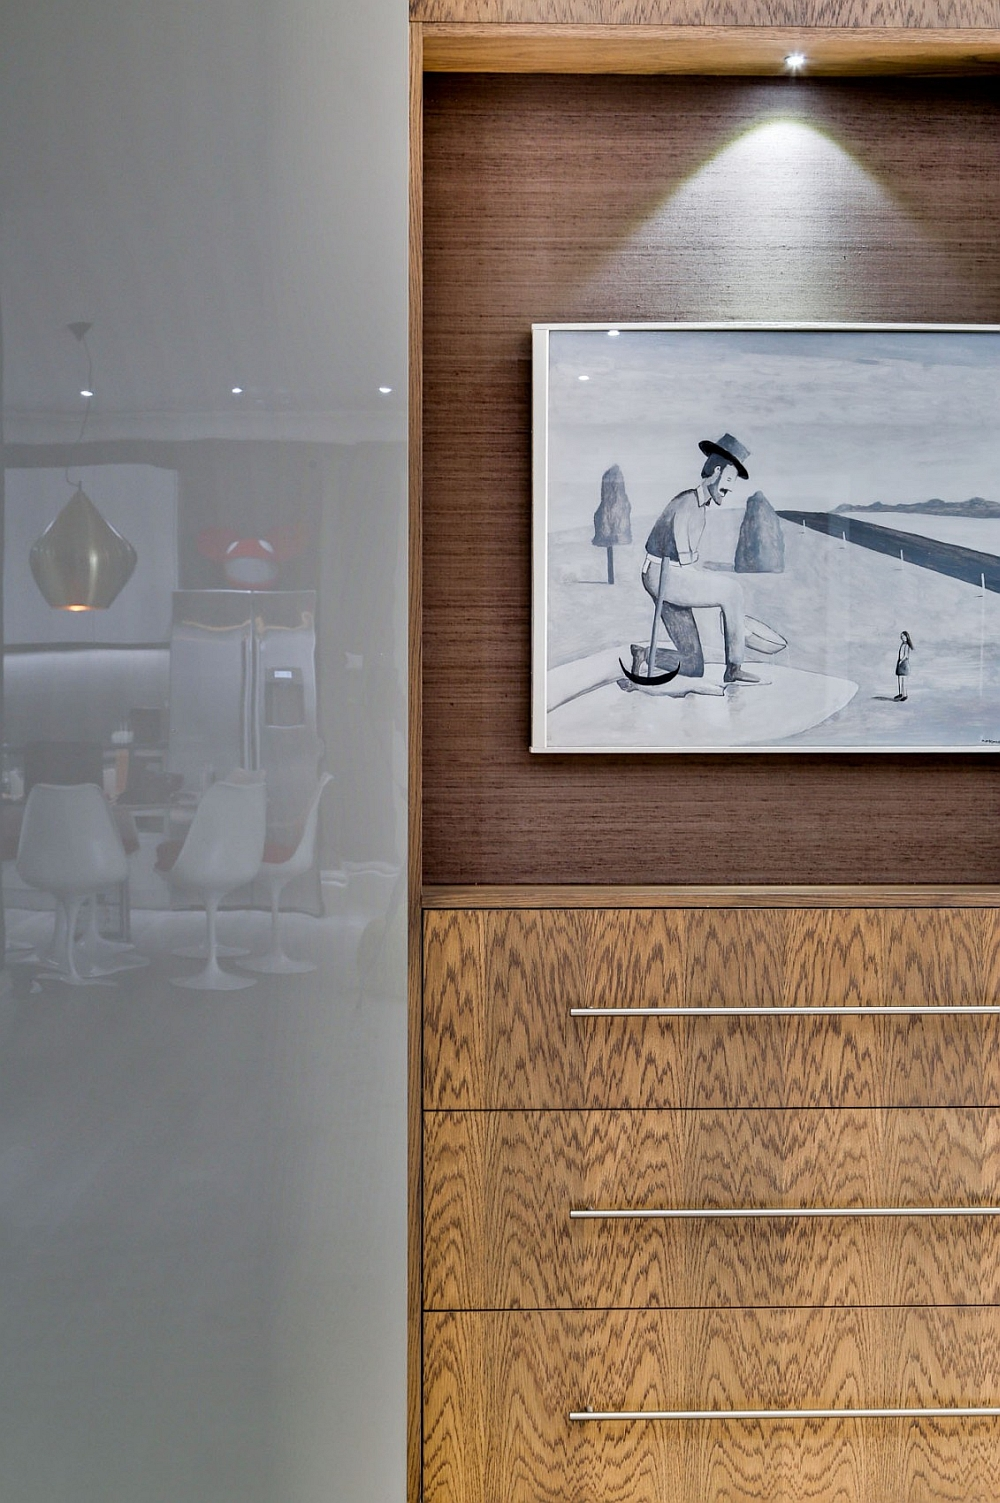 Lovely artwork and wooden divider storage add visual contrast to the posh bachelor pad